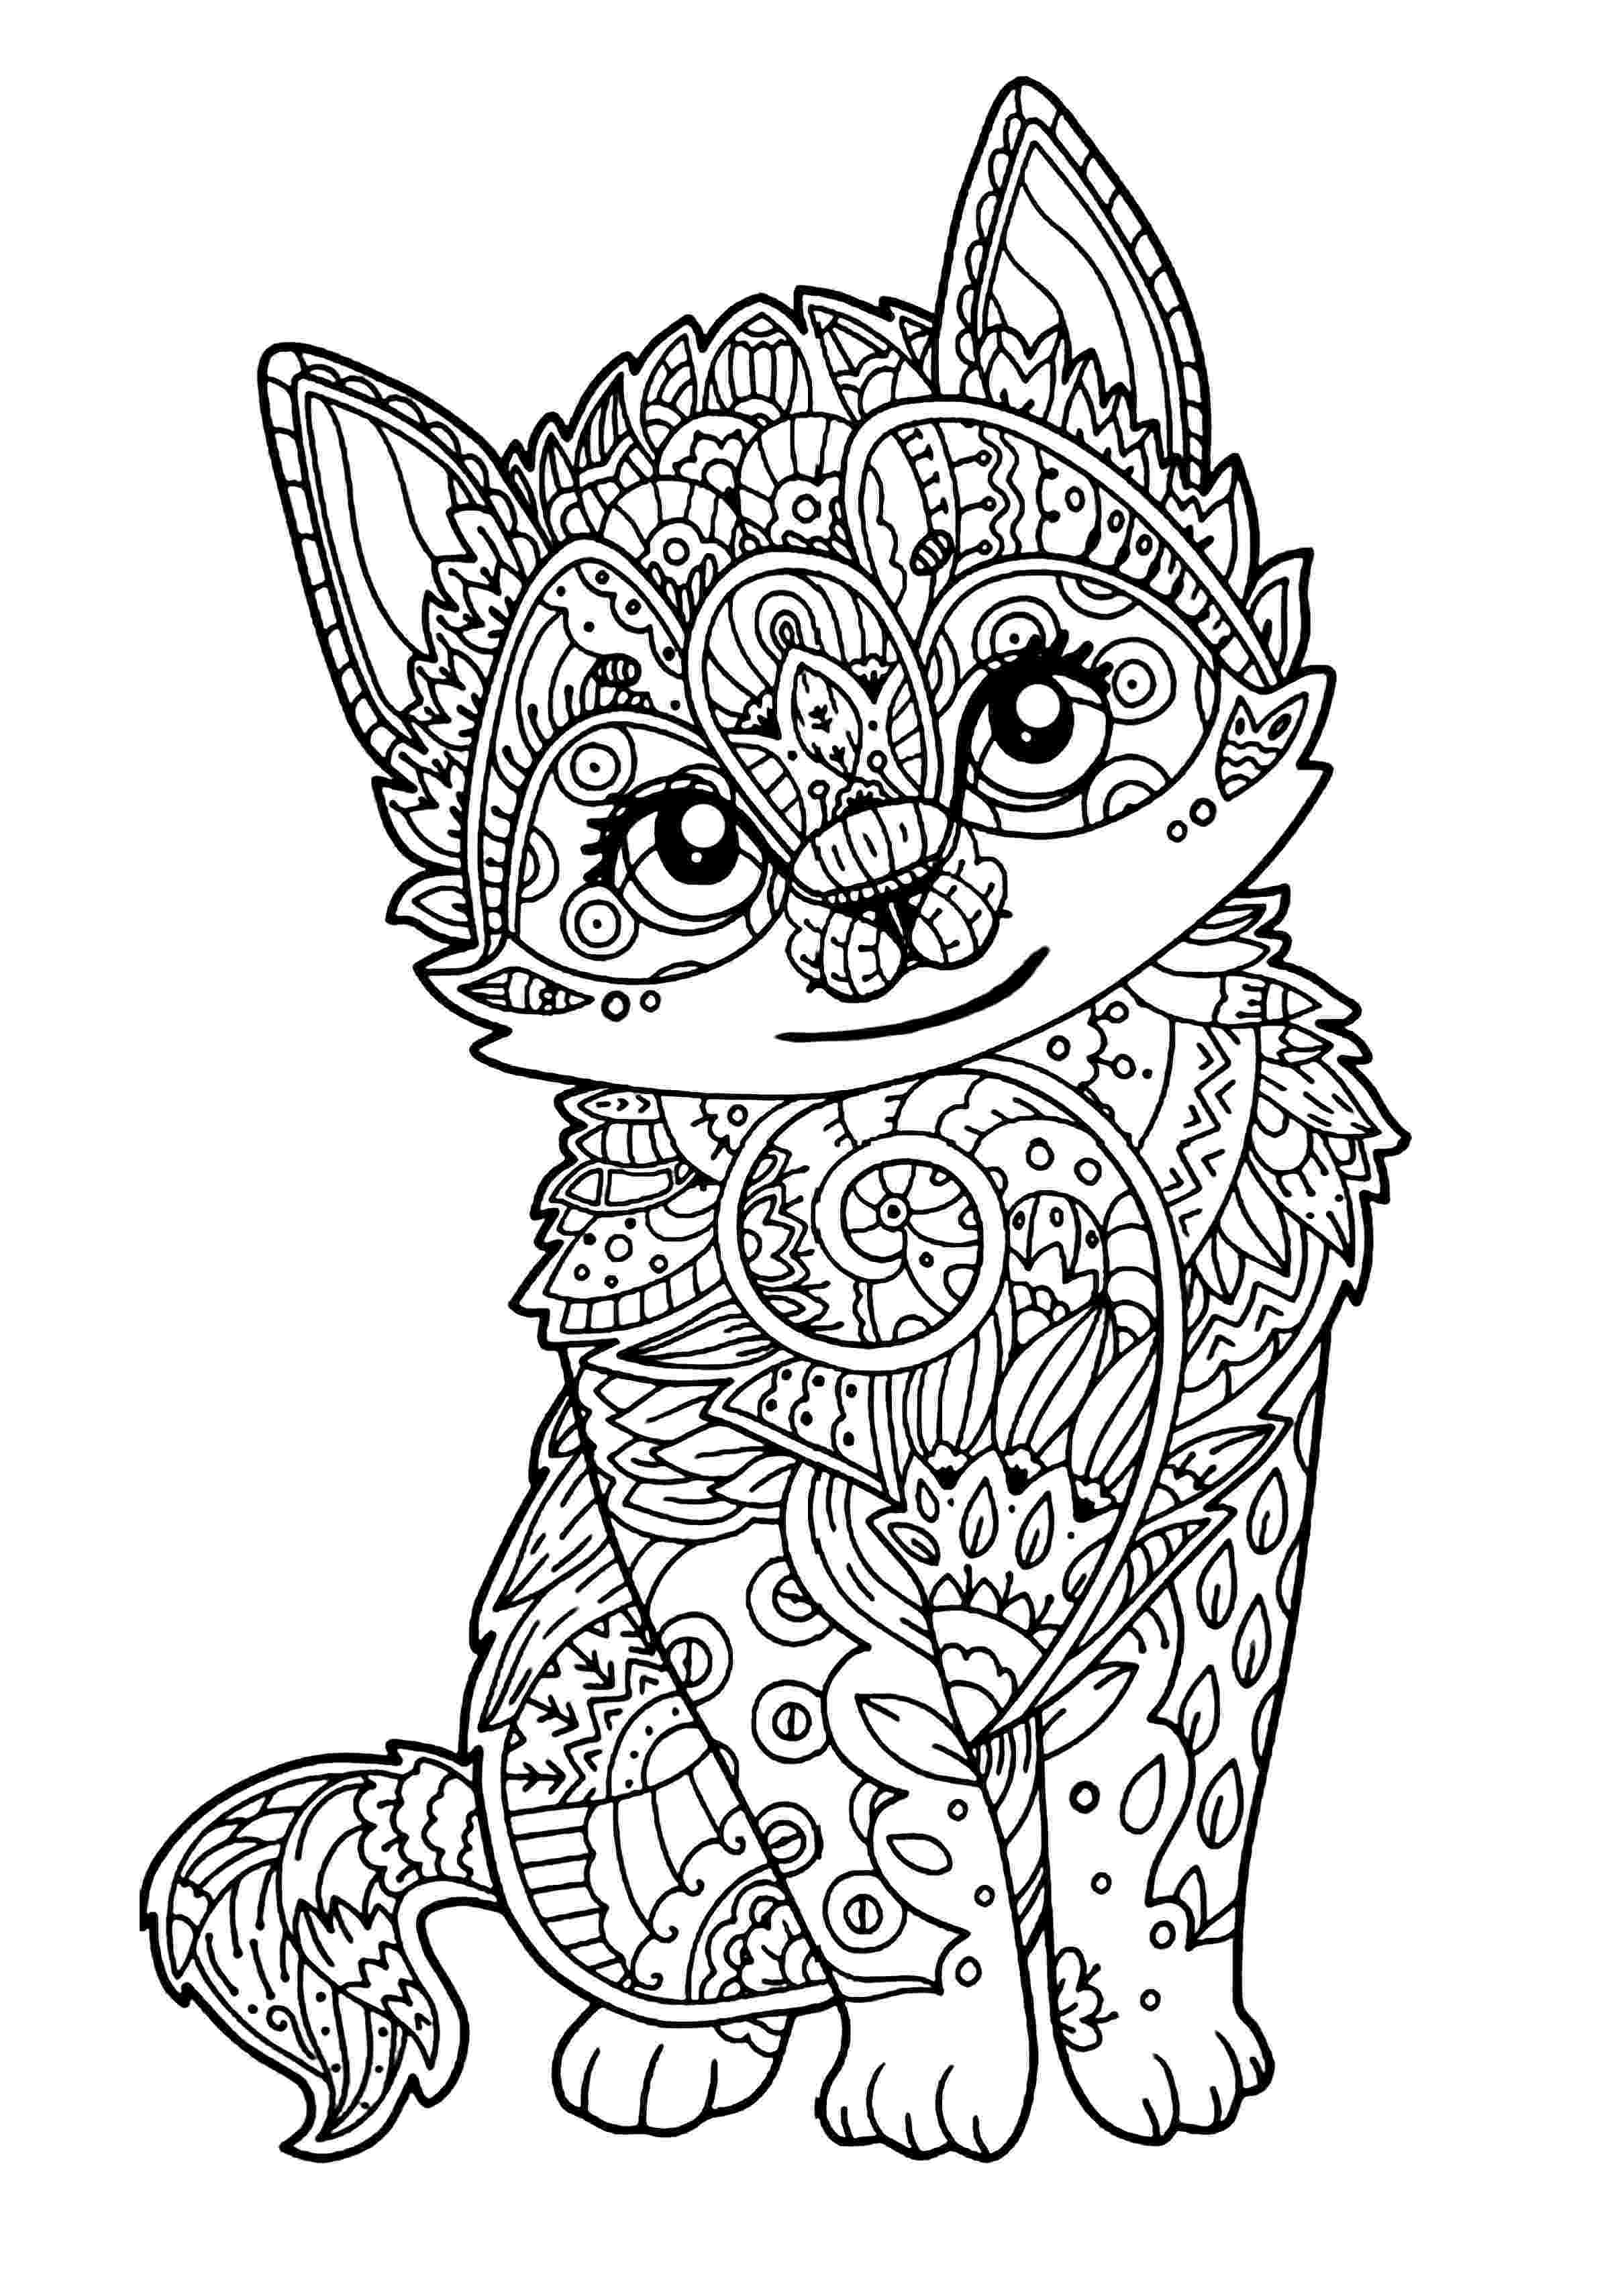 coloring pages of kittens navishta sketch sweet cute angle cats coloring kittens pages of